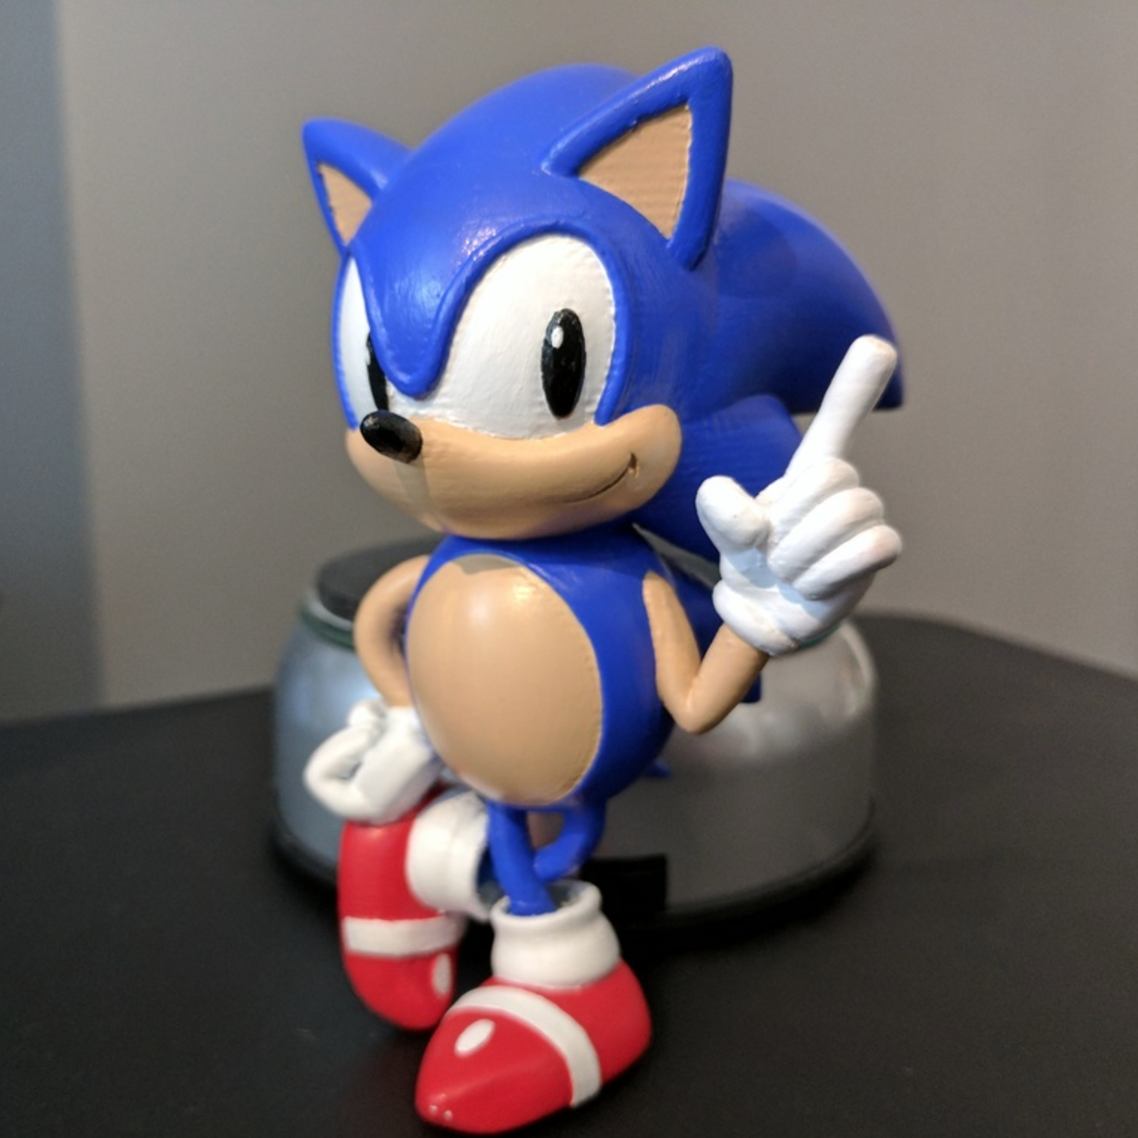 Download Free 3d Printer Designs Sonic The Hedgehog With Logo Cults